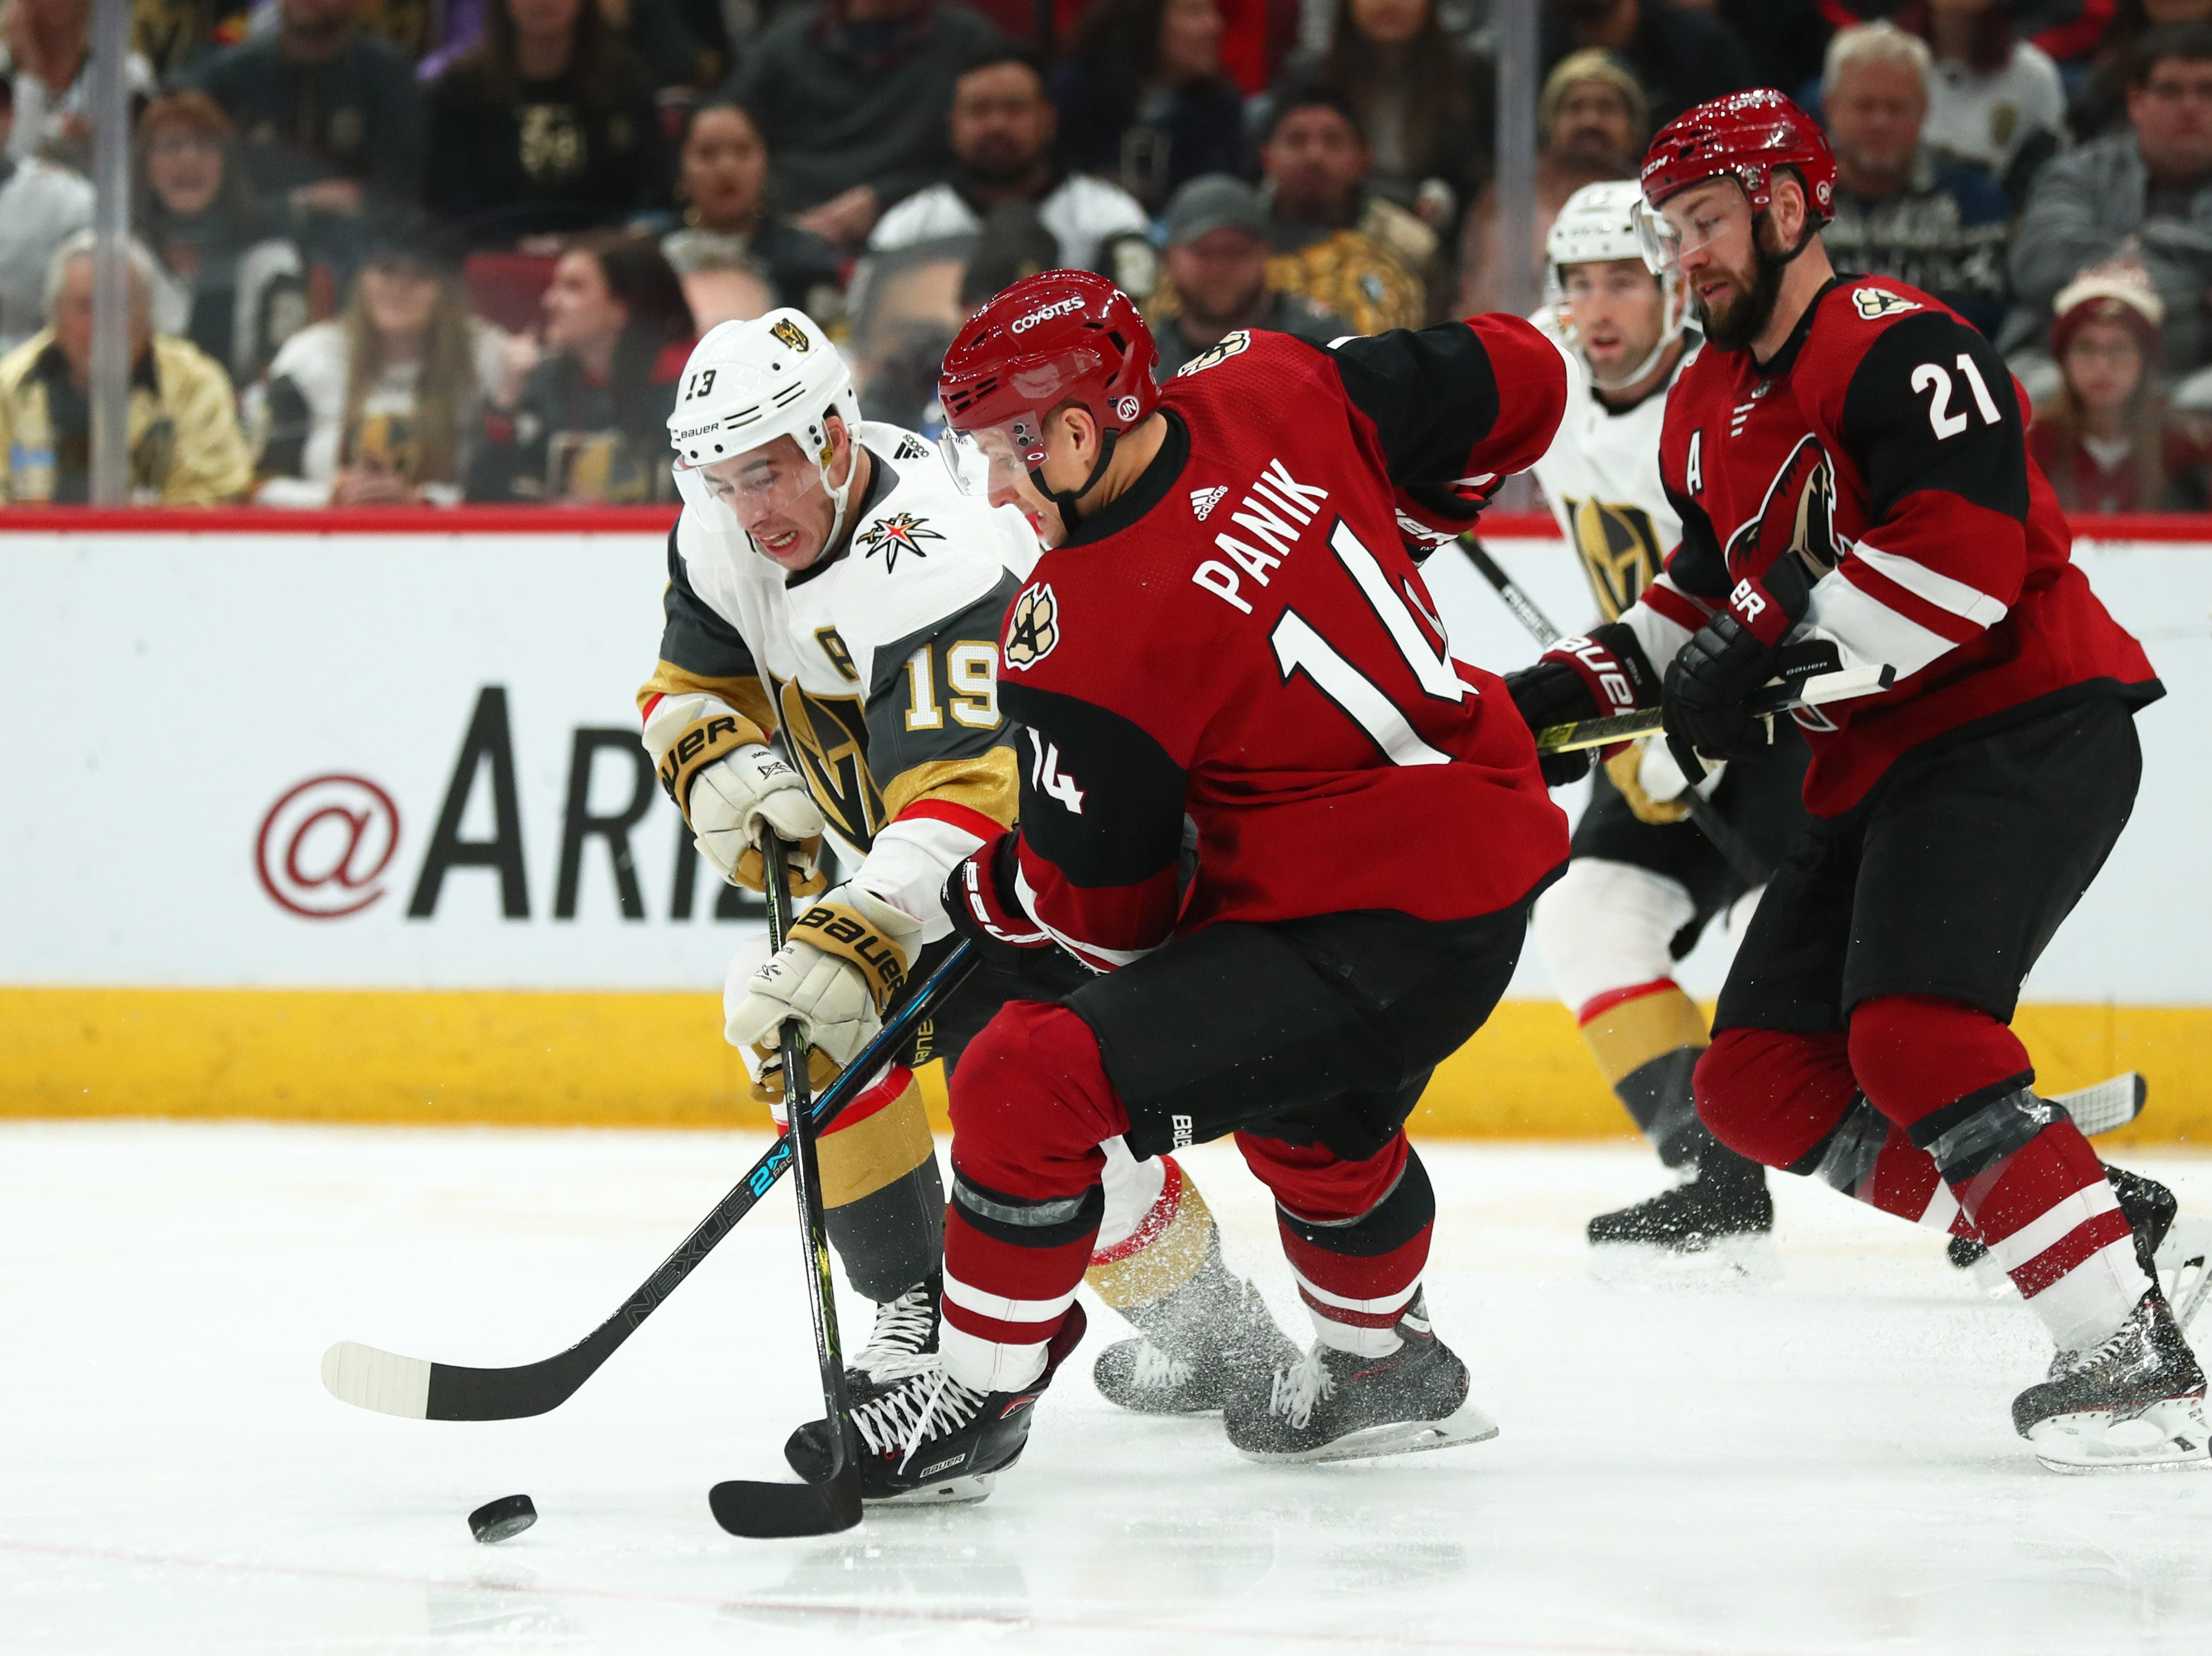 Dec 30, 2018; Glendale, AZ, USA; Arizona Coyotes right wing Richard Panik (14) against Vegas Golden Knights right wing Reilly Smith (19) in the first period at Gila River Arena. Mandatory Credit: Mark J. Rebilas-USA TODAY Sports